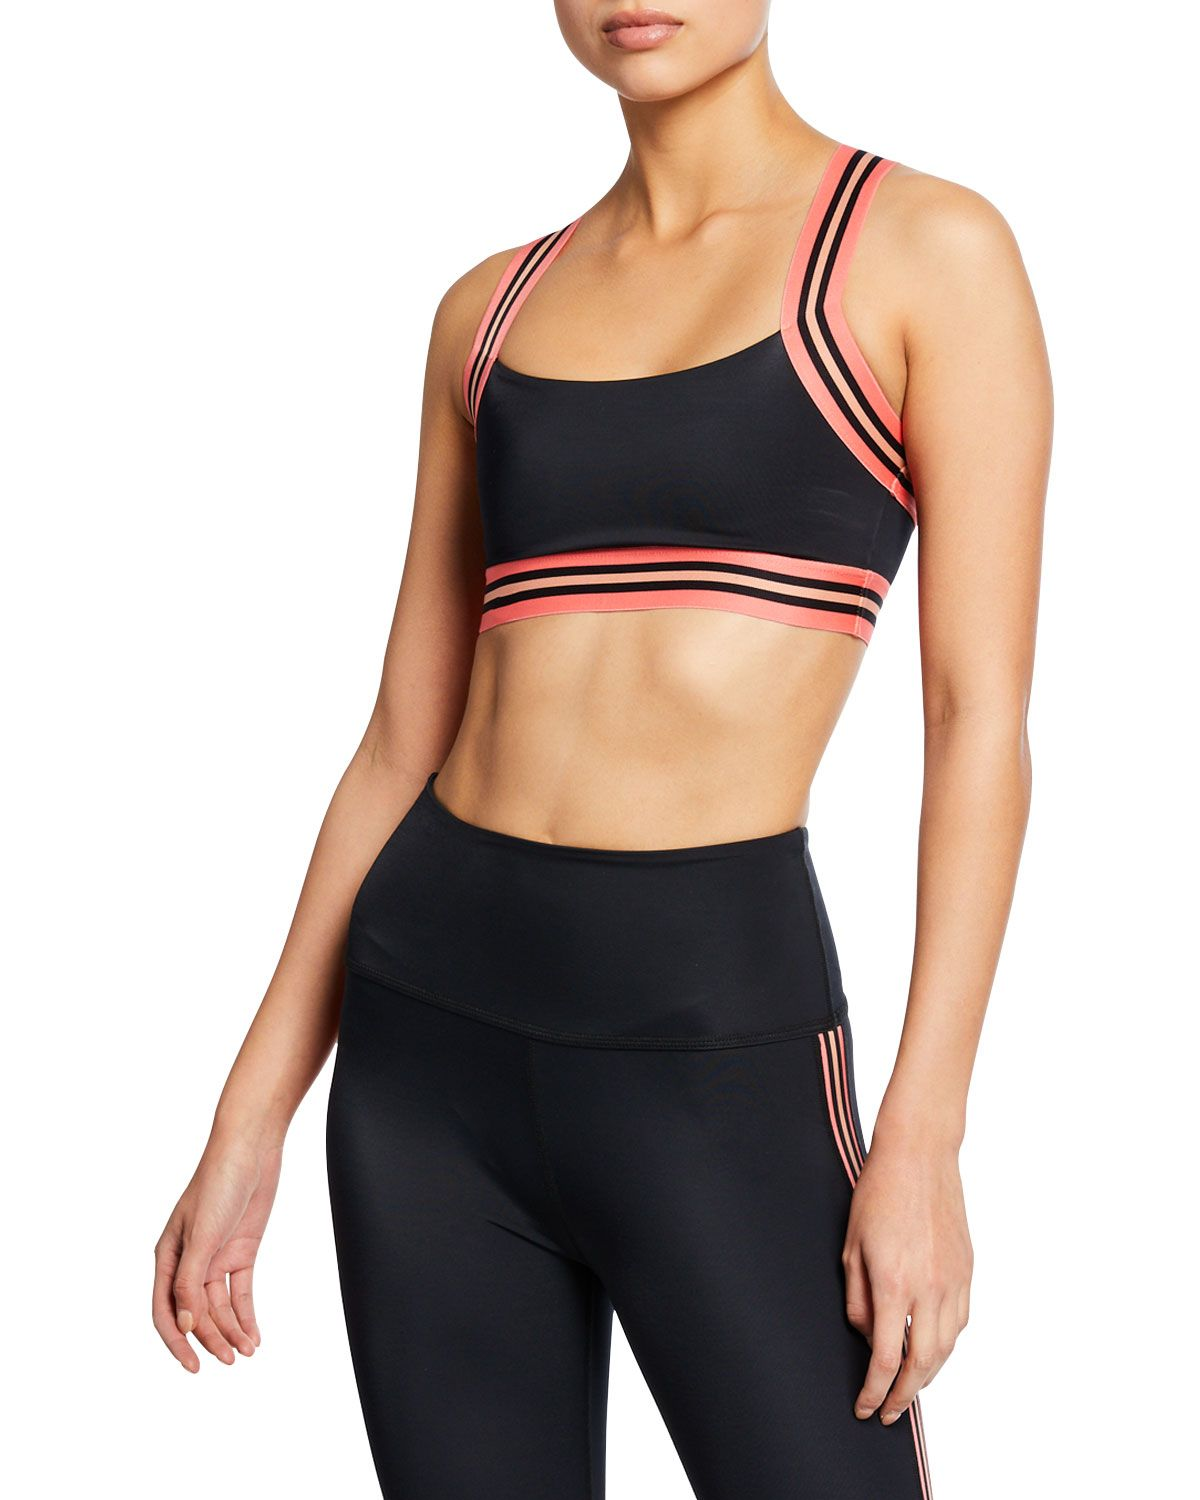 baa9e49e0d8d4 BEYOND YOGA LUX IN BLOOM VARSITY STRIPE CRISSCROSS SPORTS BRA.  beyondyoga   cloth